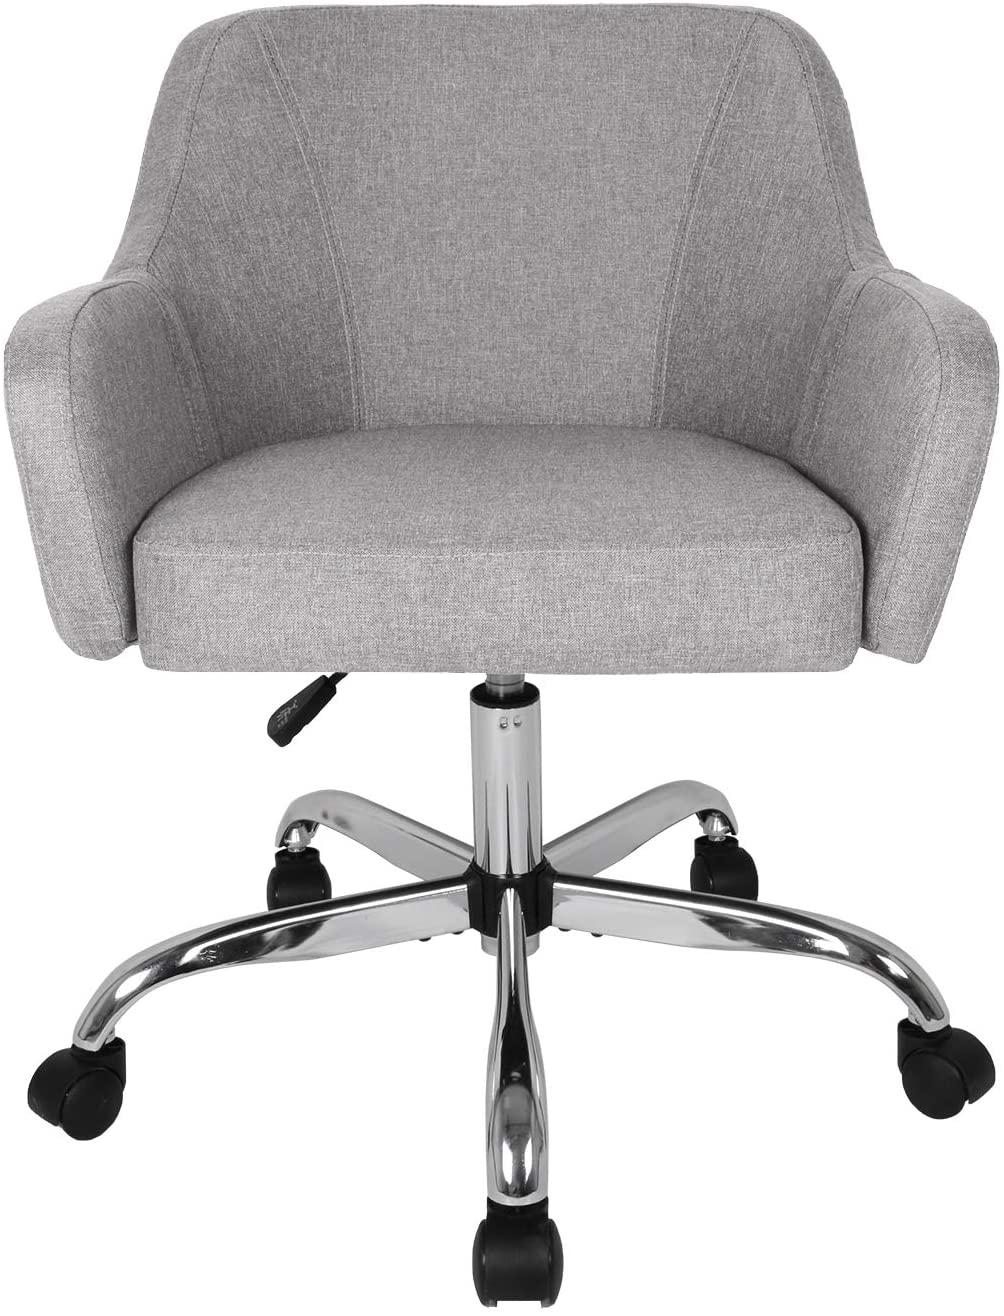 SMUGDESK Home Office Adjustable Padded Computer Task Chair Office Leisure Grey